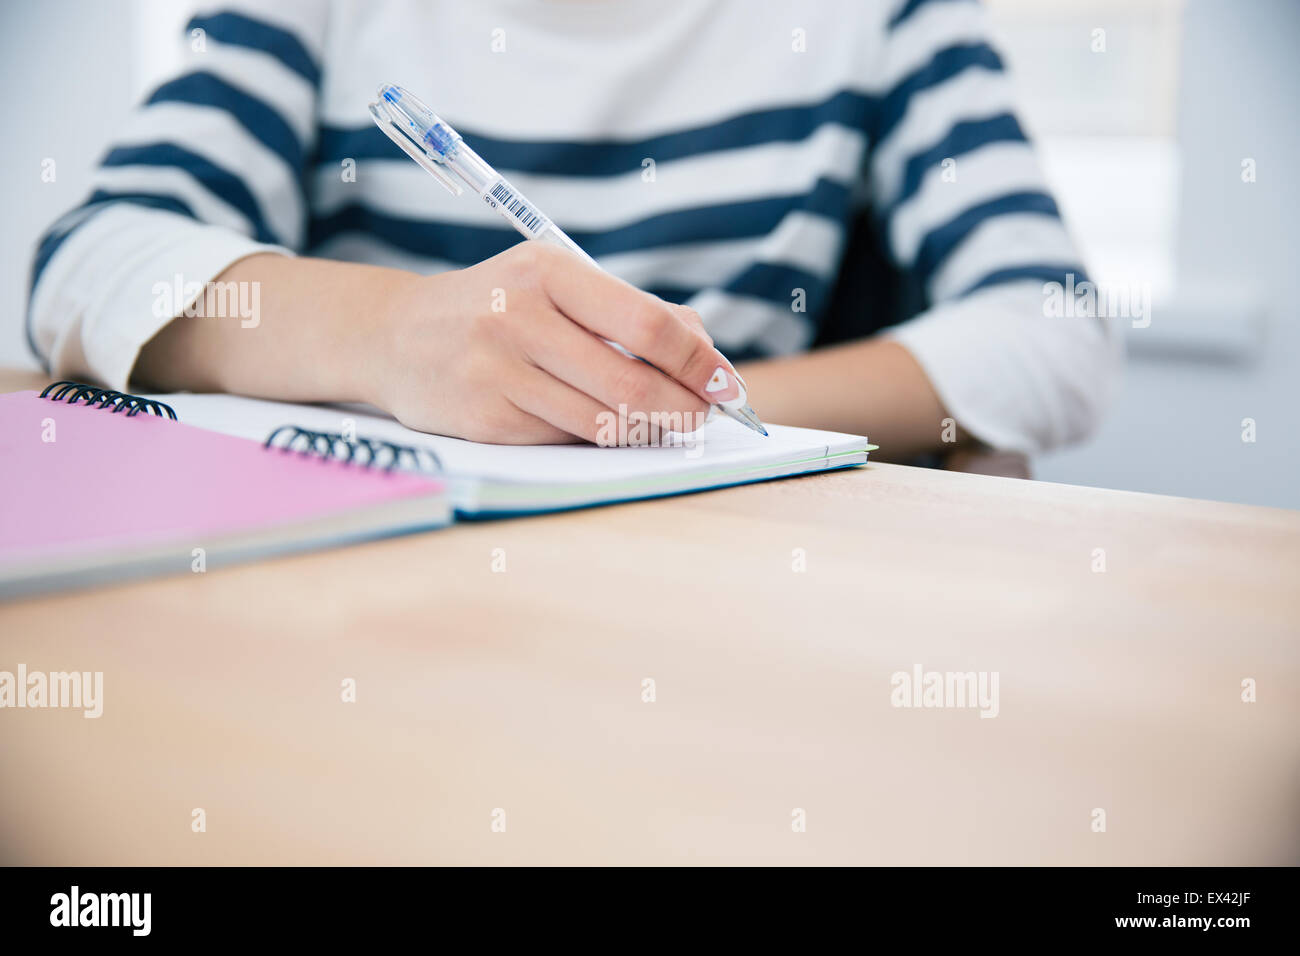 CLoseup portrait of a woman writing in notepad at office - Stock Image